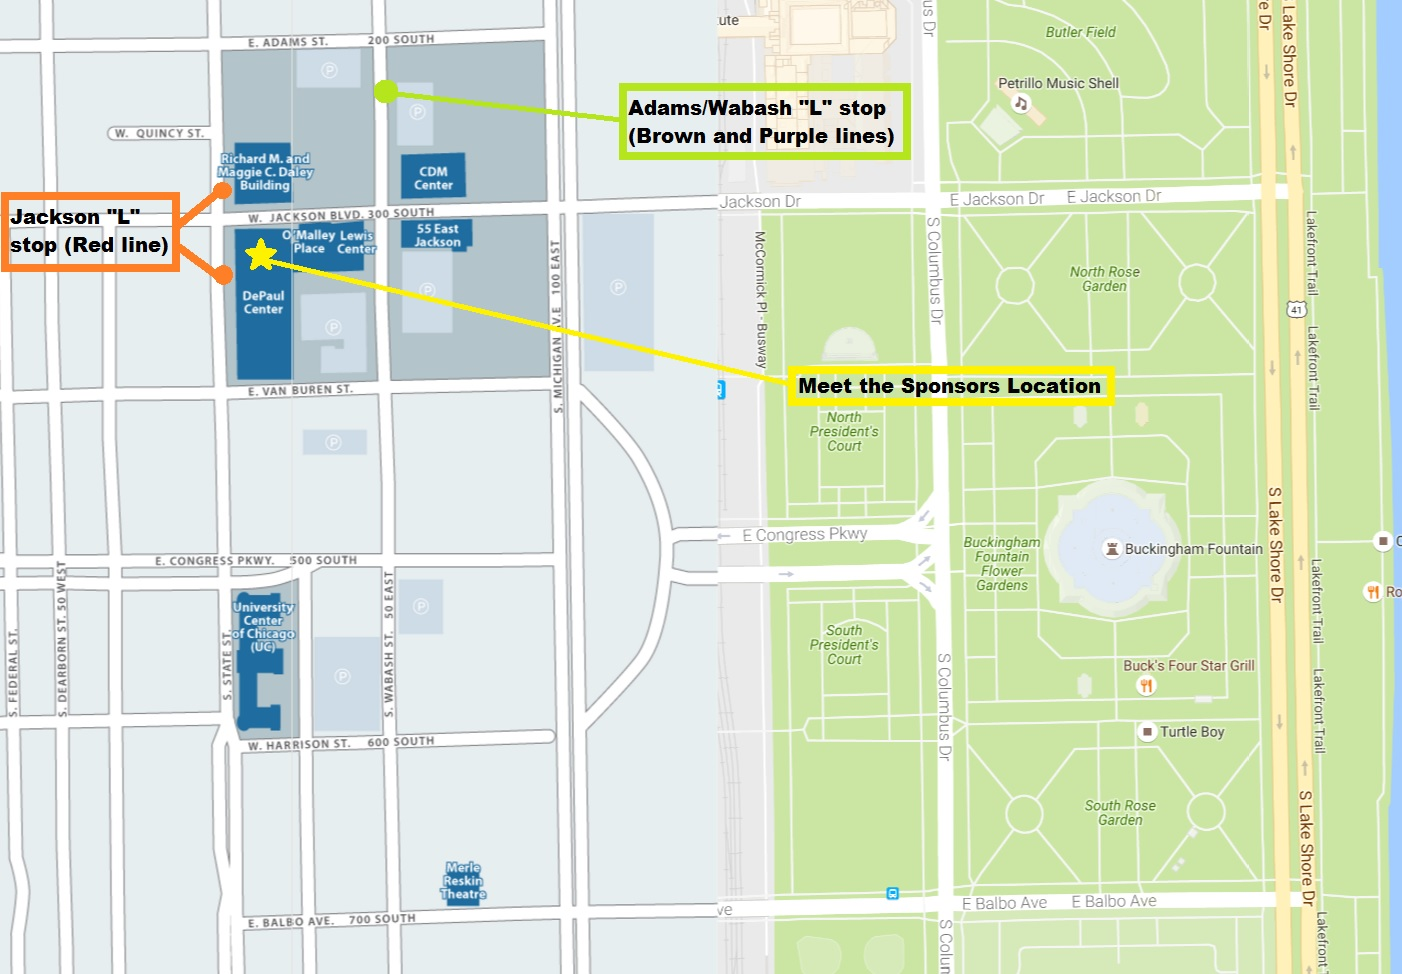 Depaul Campus Map | koot.zone-ip.com on north park map, charleston southern map, iona map, texas a&m map, u of iowa map, xavier map, auburn university map, fordham map, drexel map, seton hall map, northern illinois map, loyola map, liberty map, lincoln park map, u of miami map, museum park map, u of illinois map, university of illinois at chicago map, quinnipiac map, texas wesleyan map,